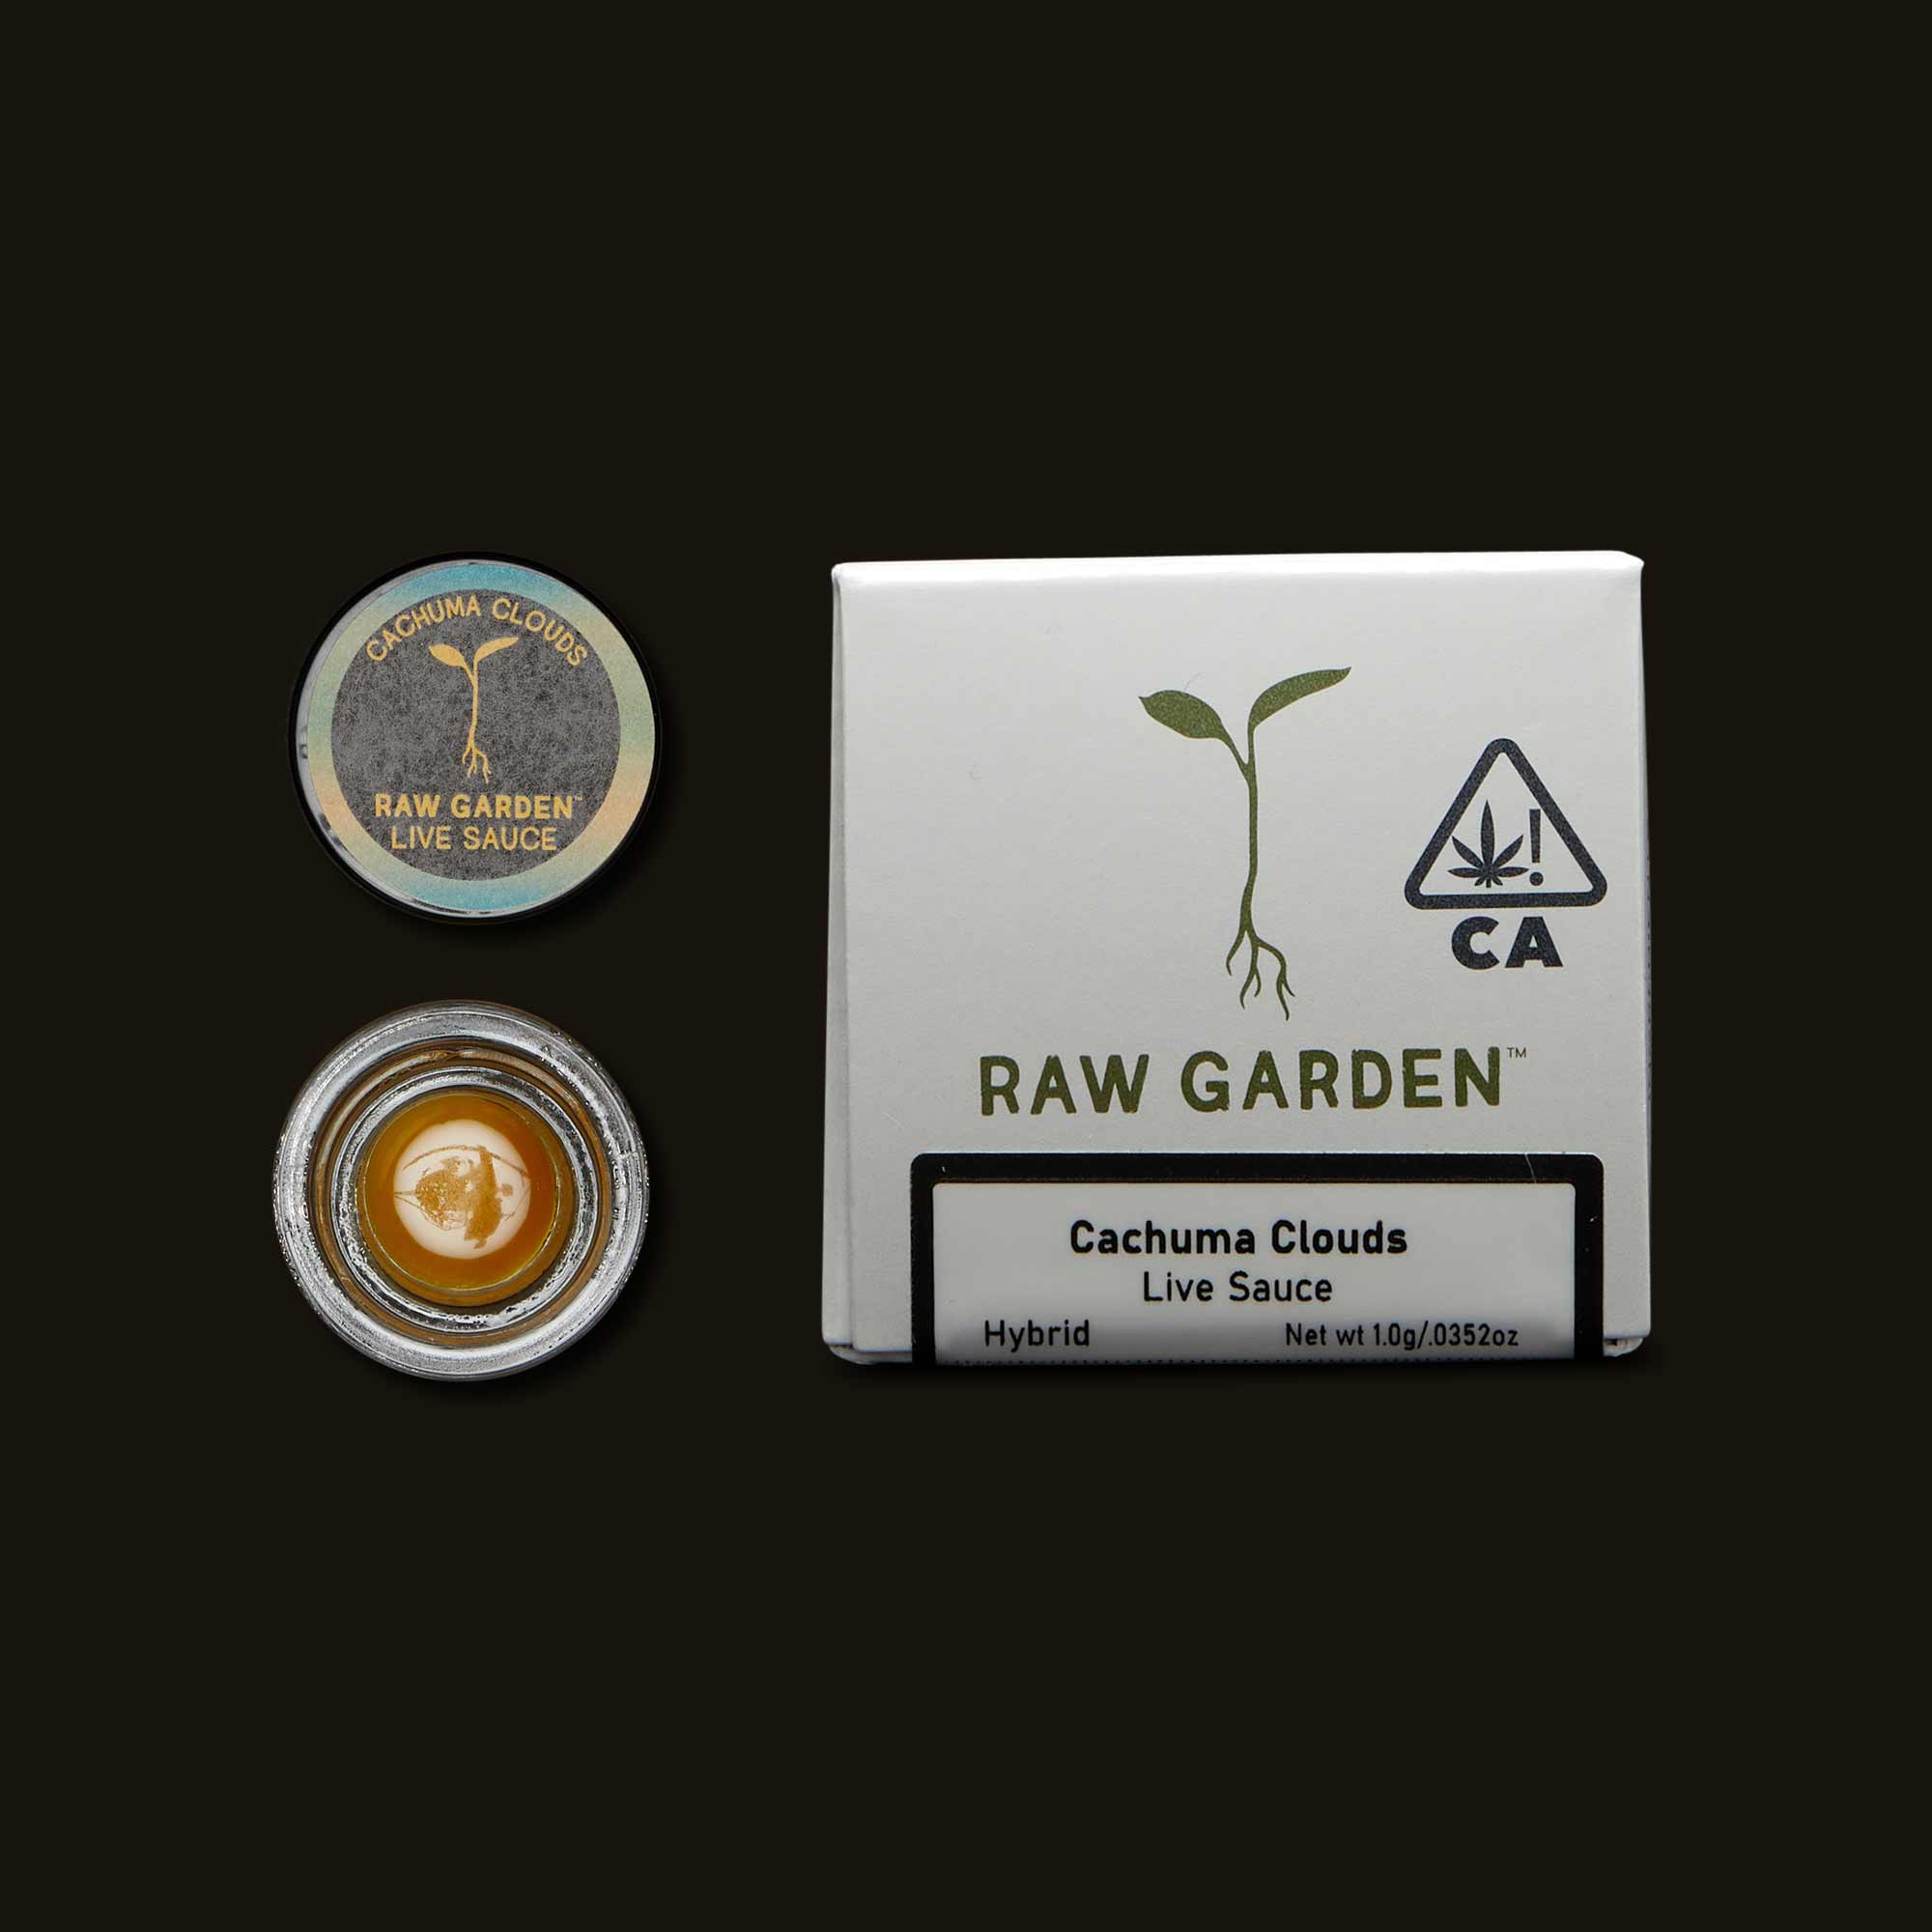 Cachuma Clouds Raw Garden's Live Sauce package and open jar